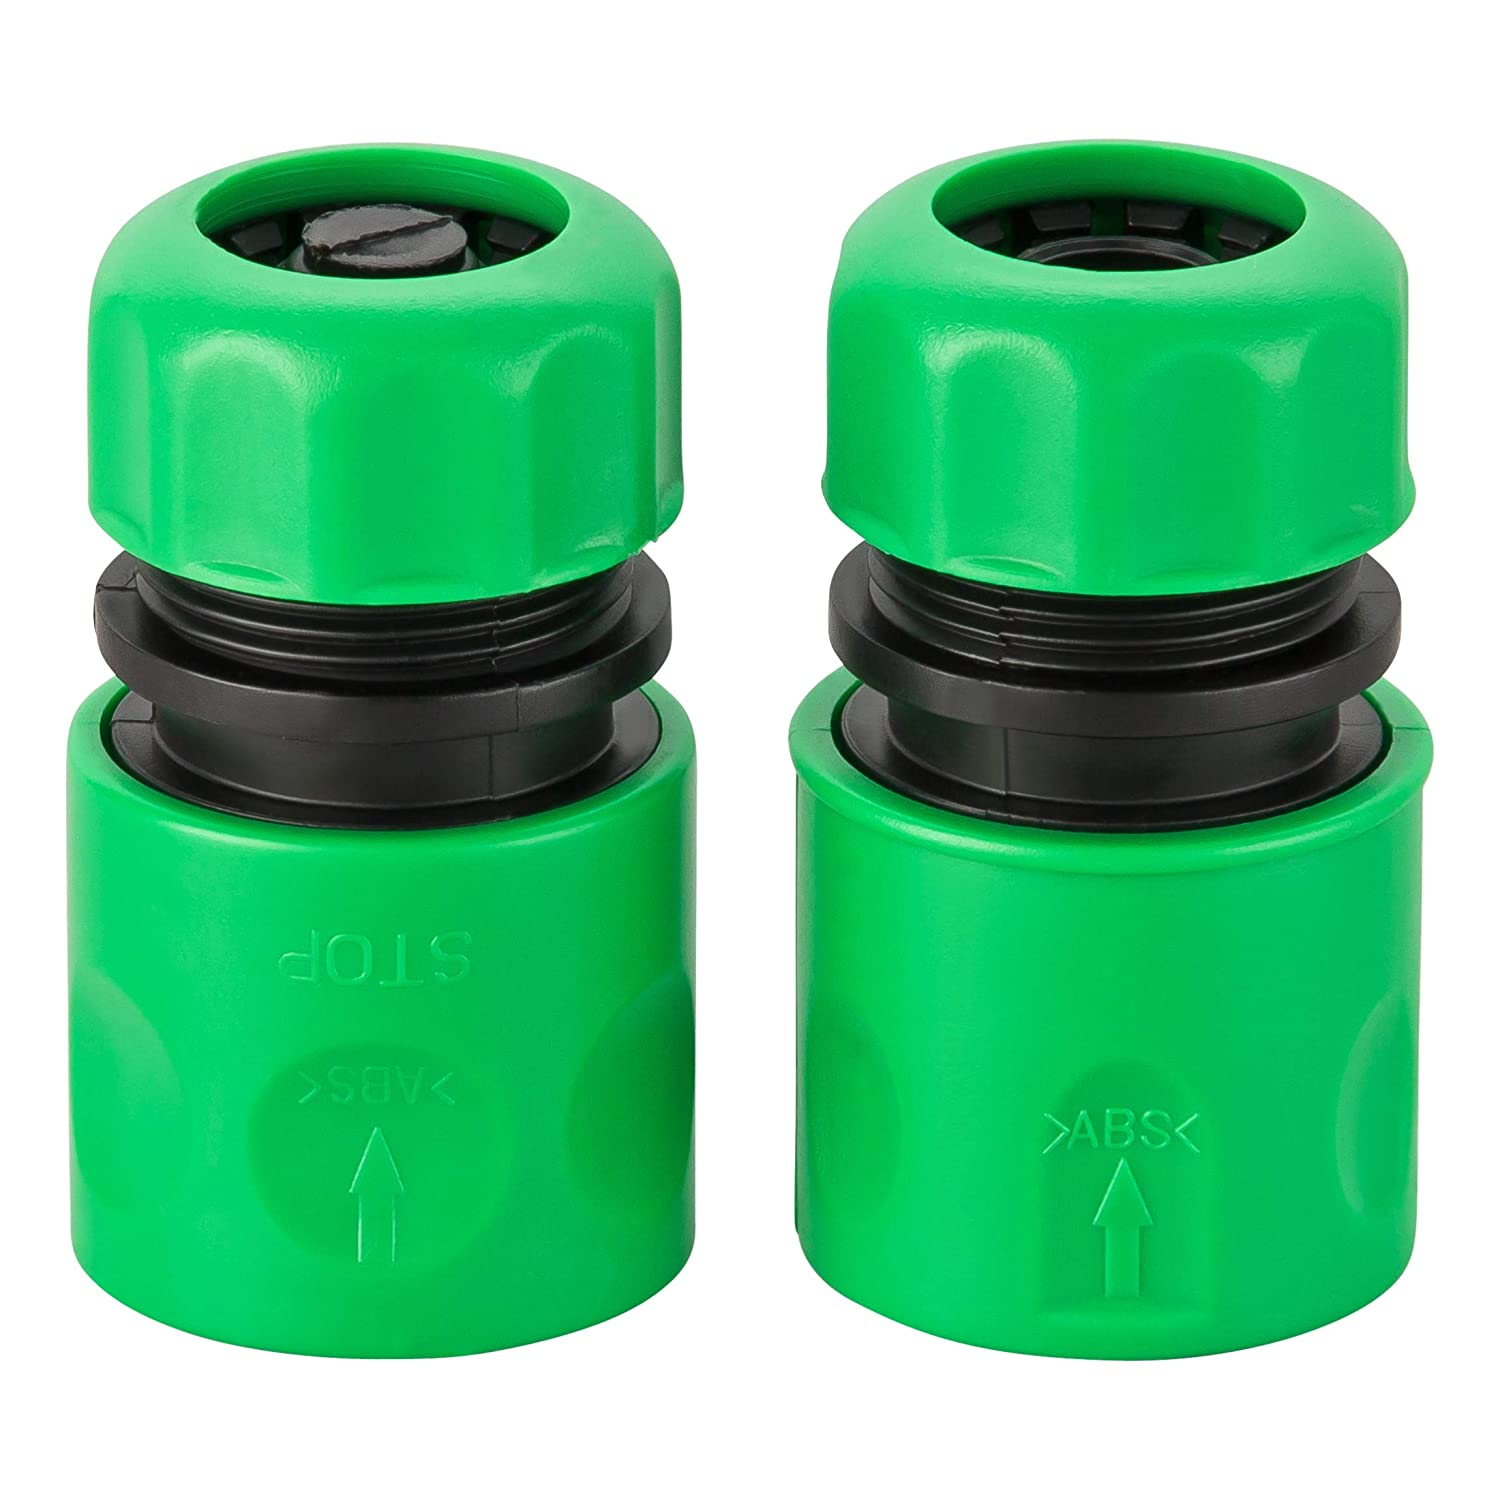 GardenMate Pack of 2 Plastic Universal Hose End Connectors 13mm (1/2inch) - One With and one Without 'Water Stop' Function